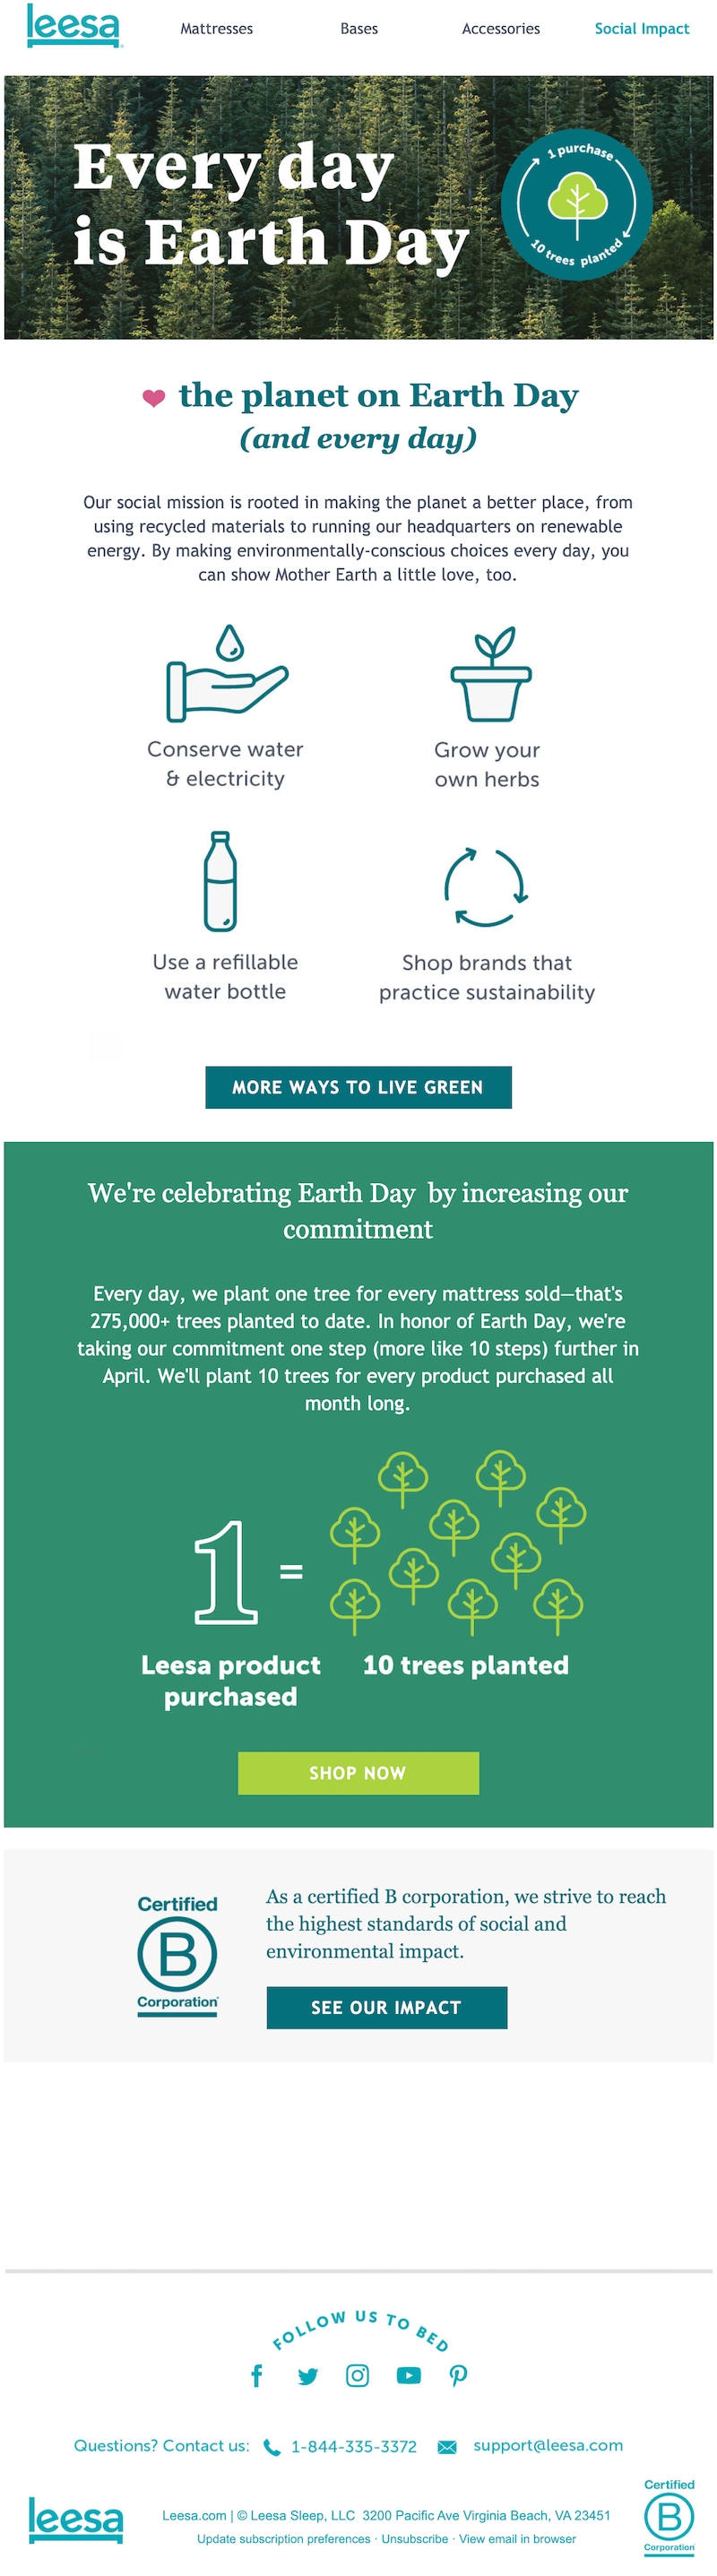 leesa earth day email